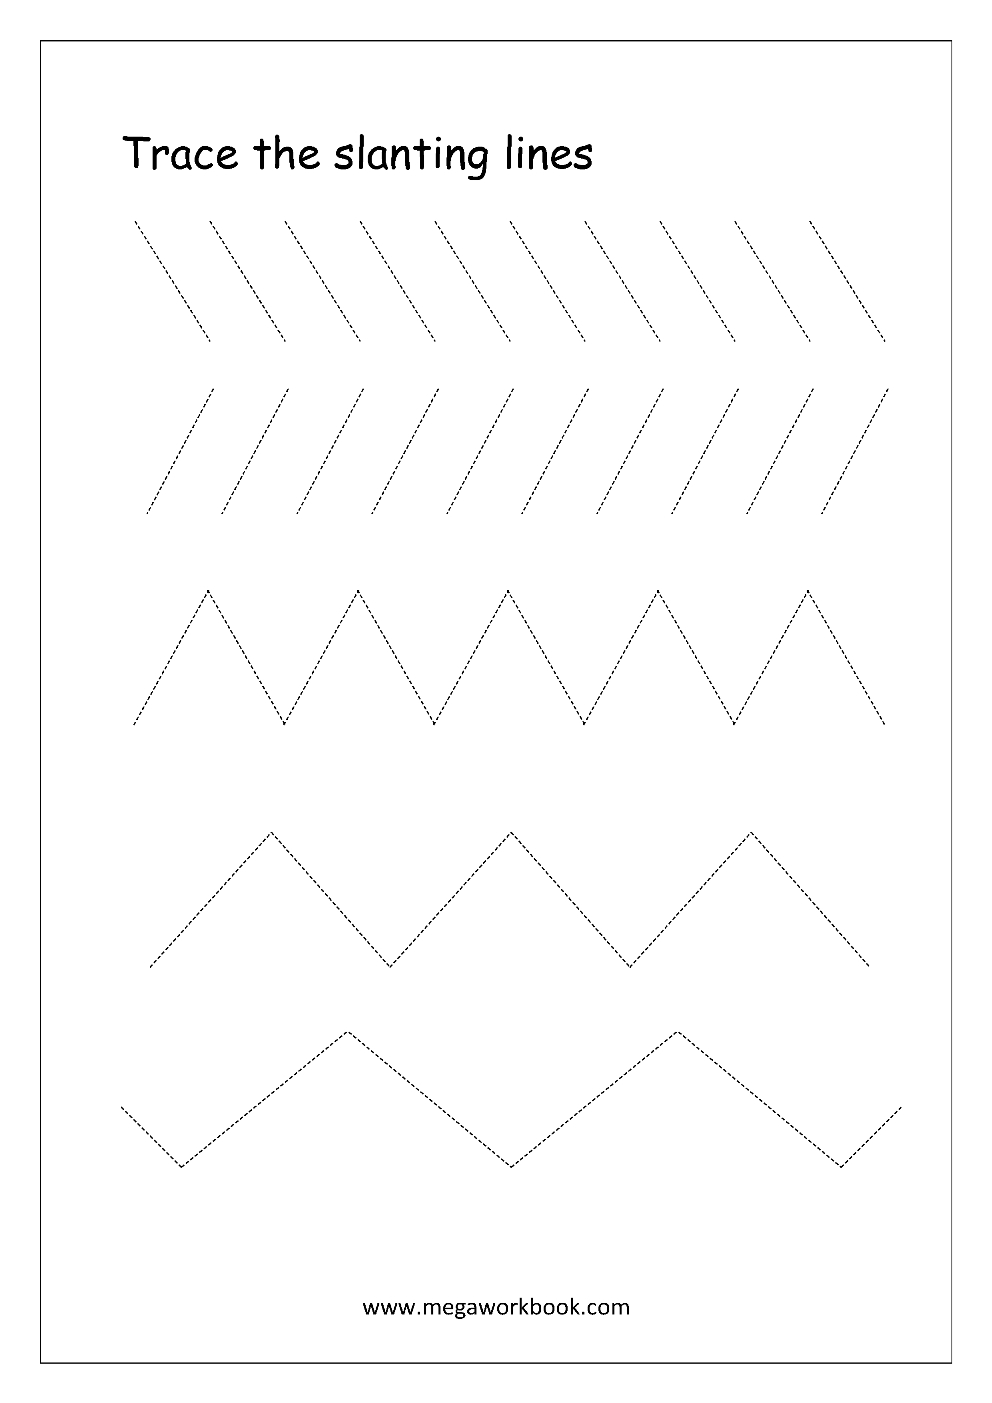 Free Printable Pre-Writing Tracing Worksheets For Preschoolers | Tracing Lines Worksheets Printable